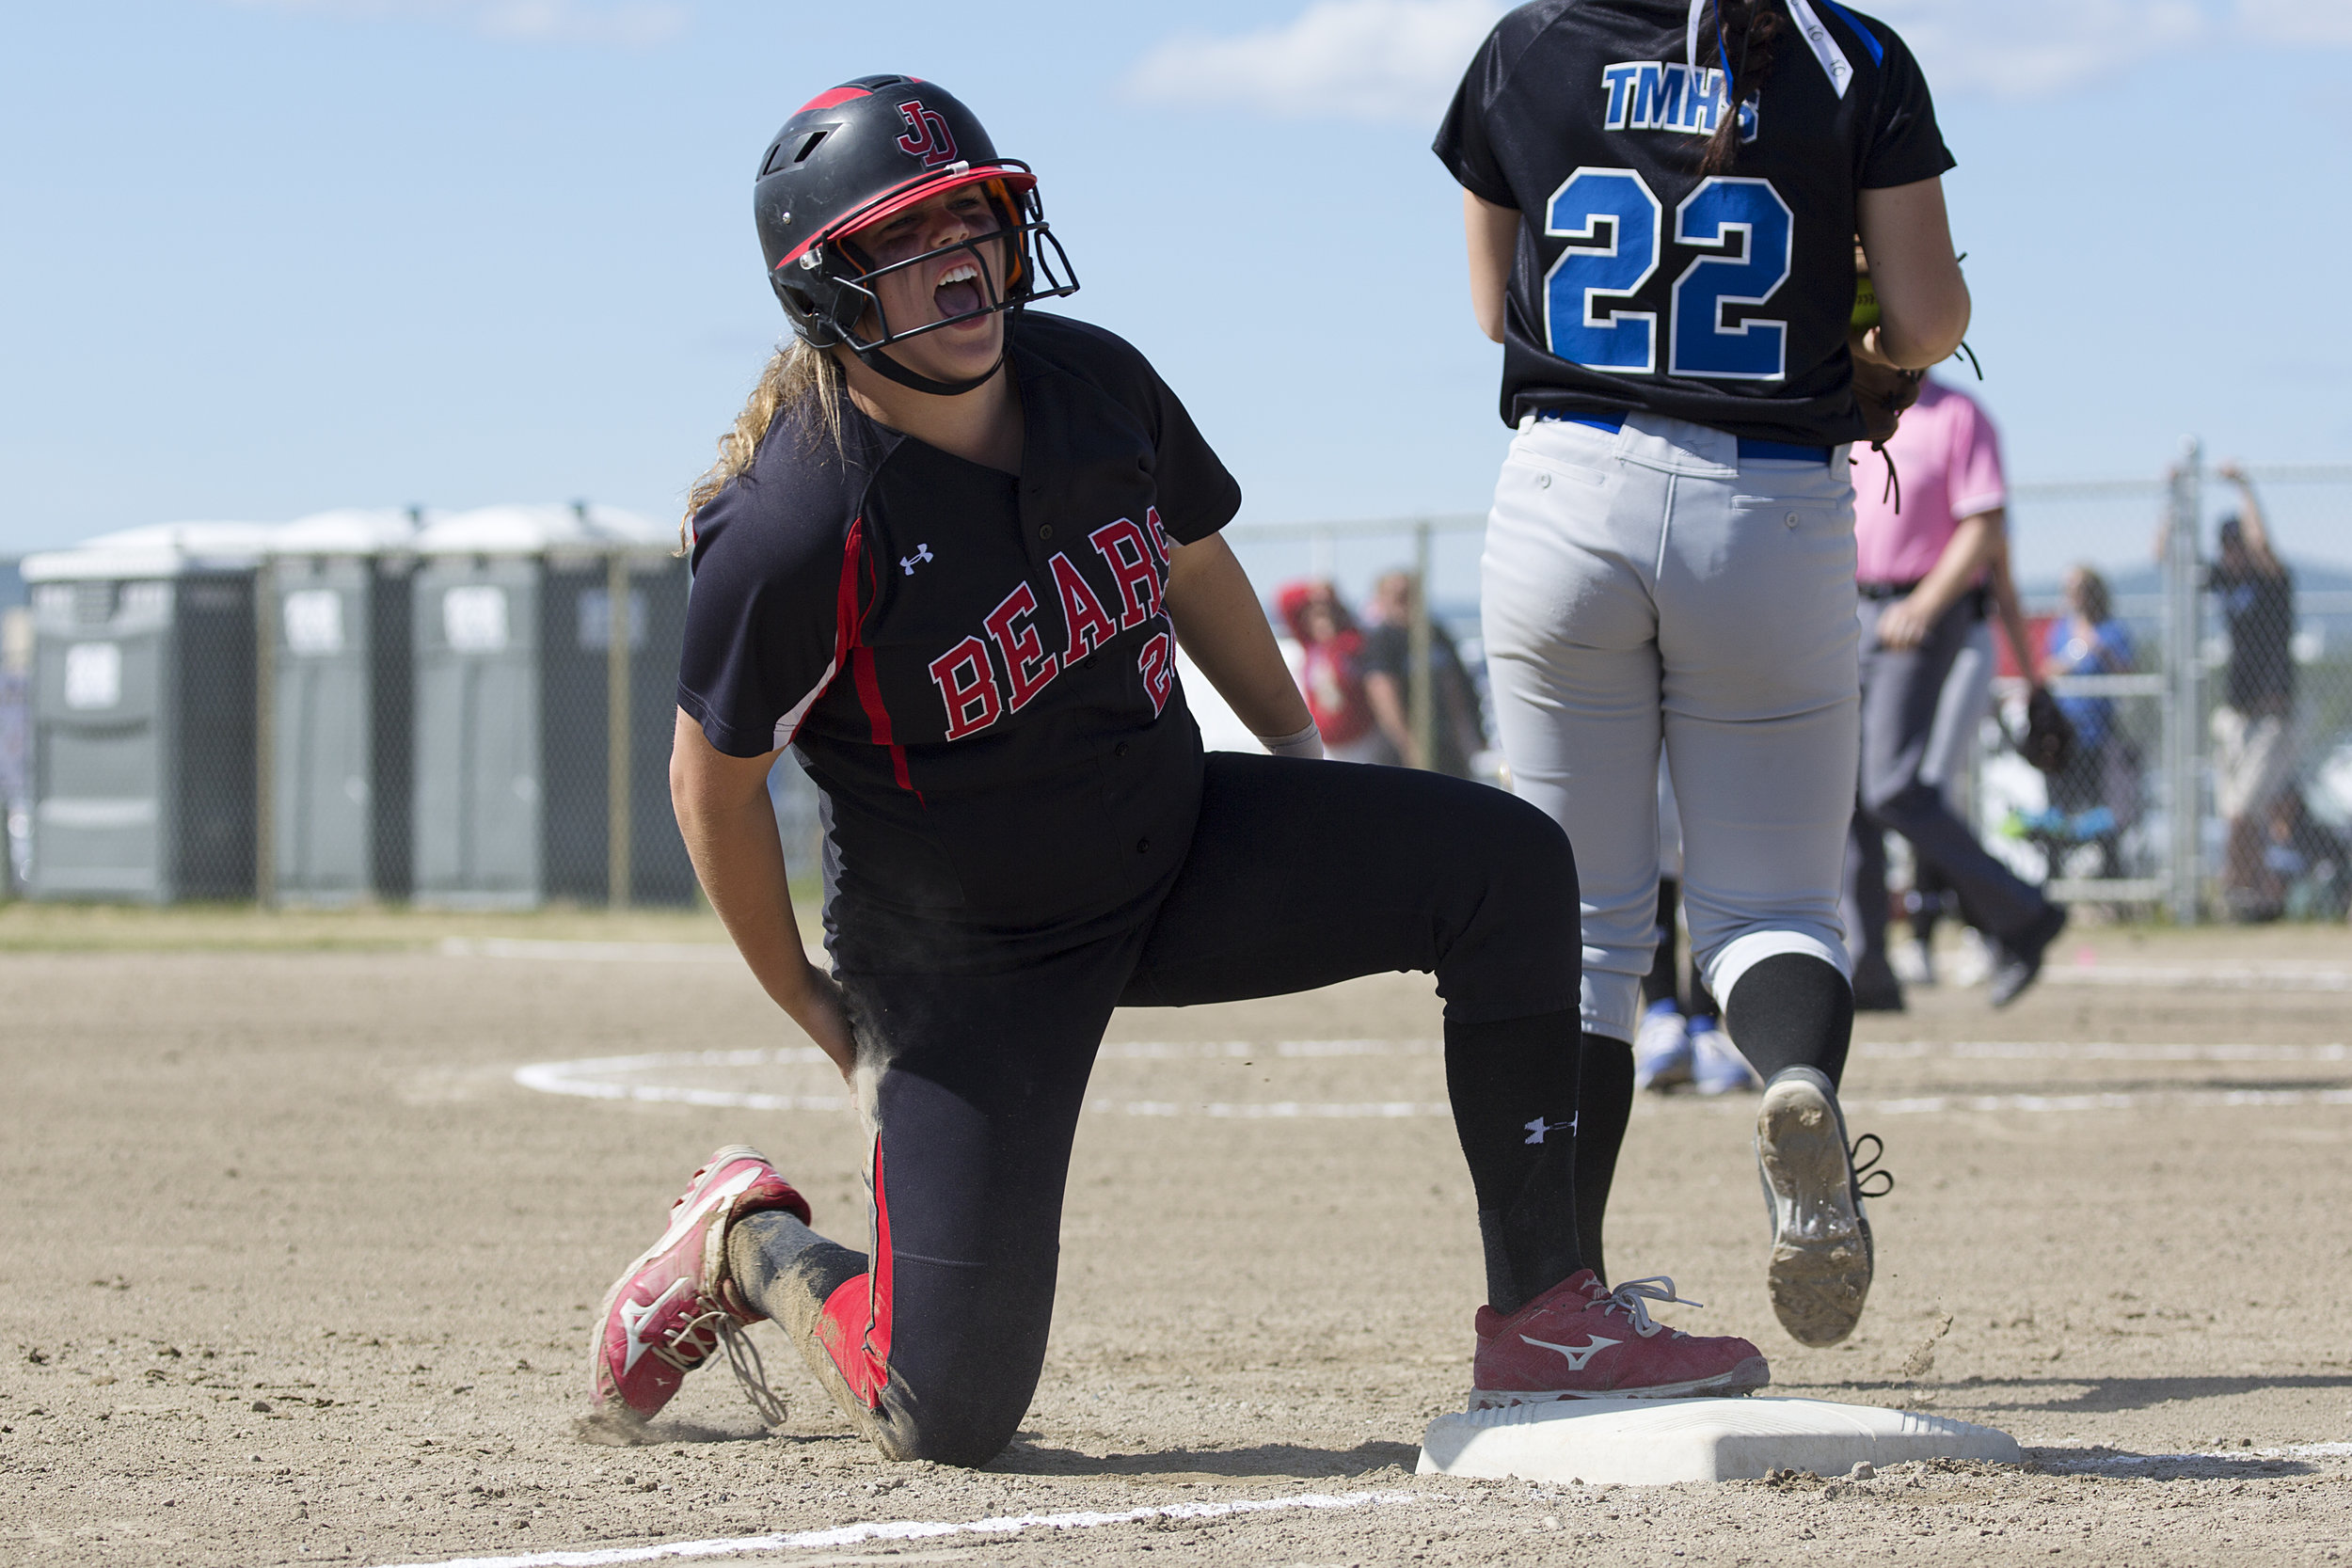 Juneau Douglas, Skylar Hickok (20) (left) yells out in pain after sliding safely onto third base in the finals against Thunder Mountain for the State Championship Softball game on Saturday, June 3rd in the South Davis Park Complex in Fairbanks, AK. Sarah Manriquez/ Juneau Empire